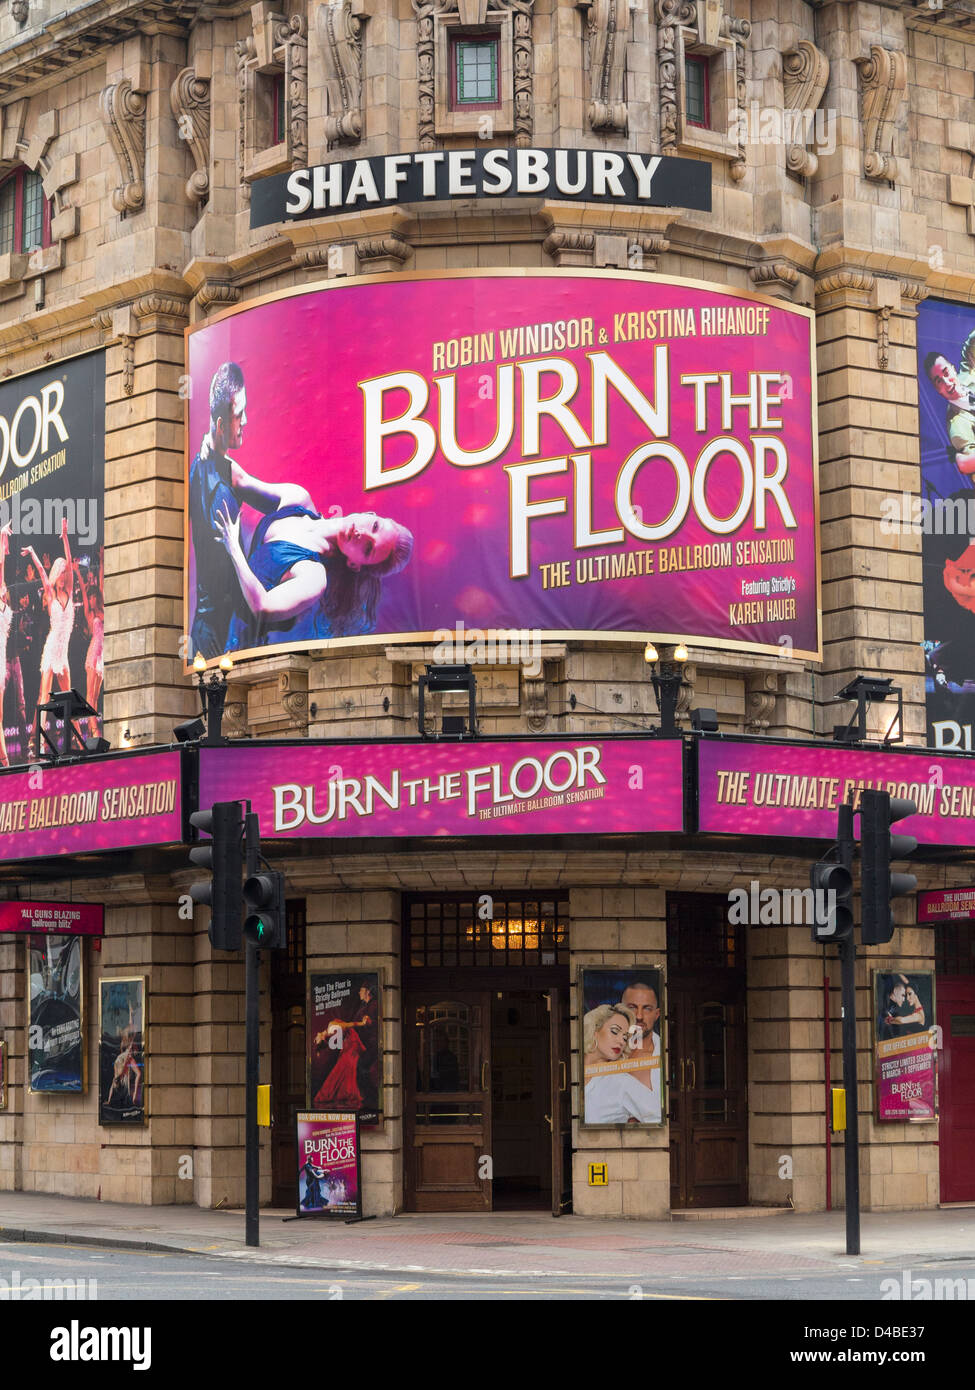 Shaftesbury Theatre with signs for Burn The Floor Musical, London, England - Stock Image